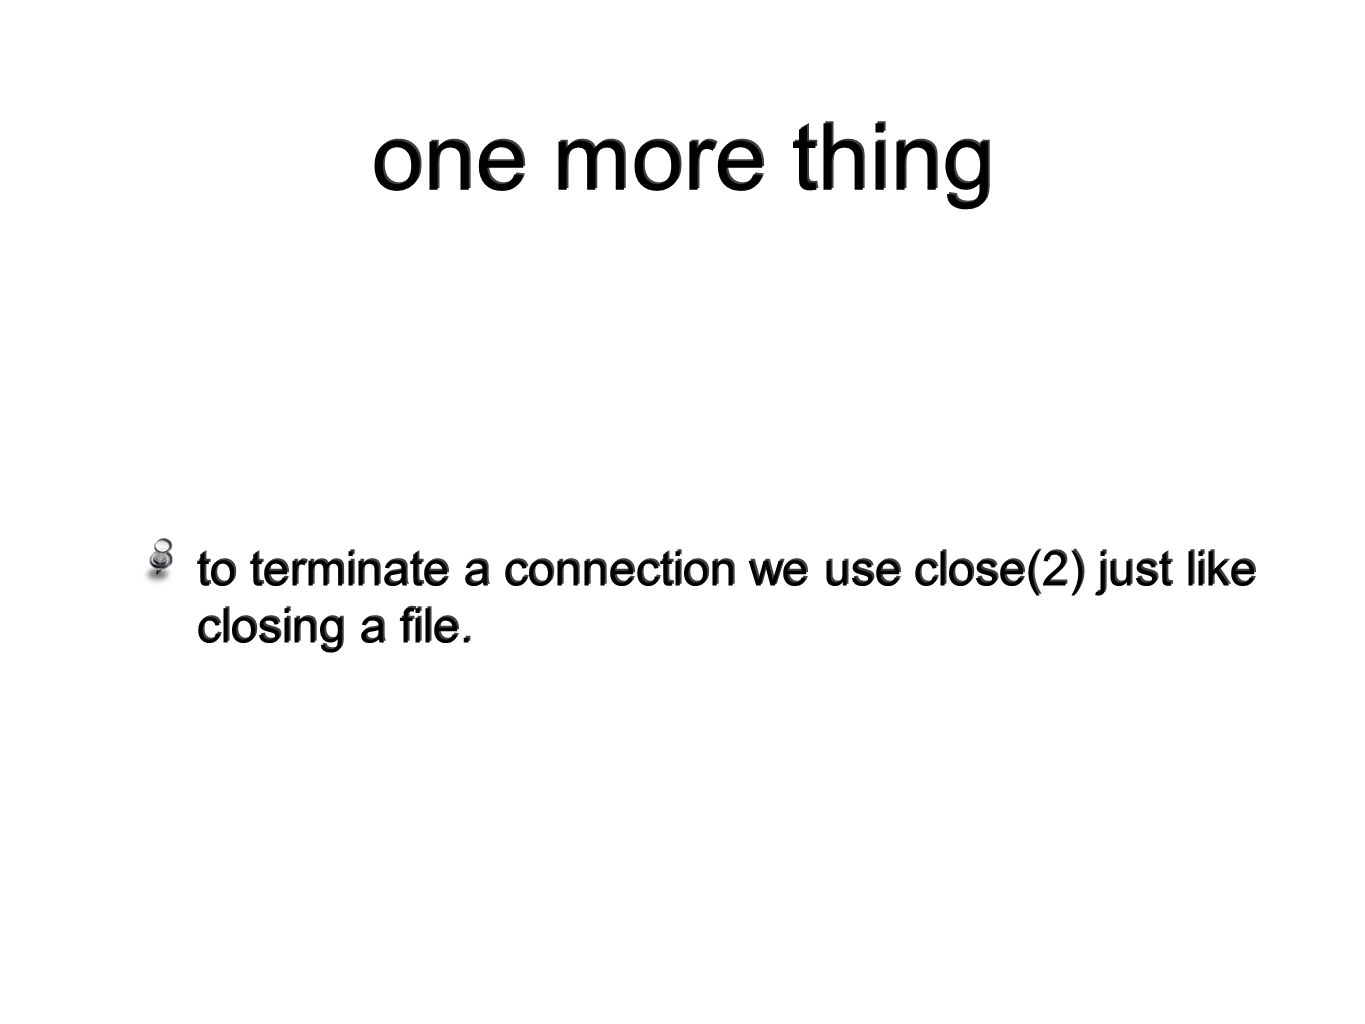 one more thing to terminate a connection we use close(2) just like closing a file.